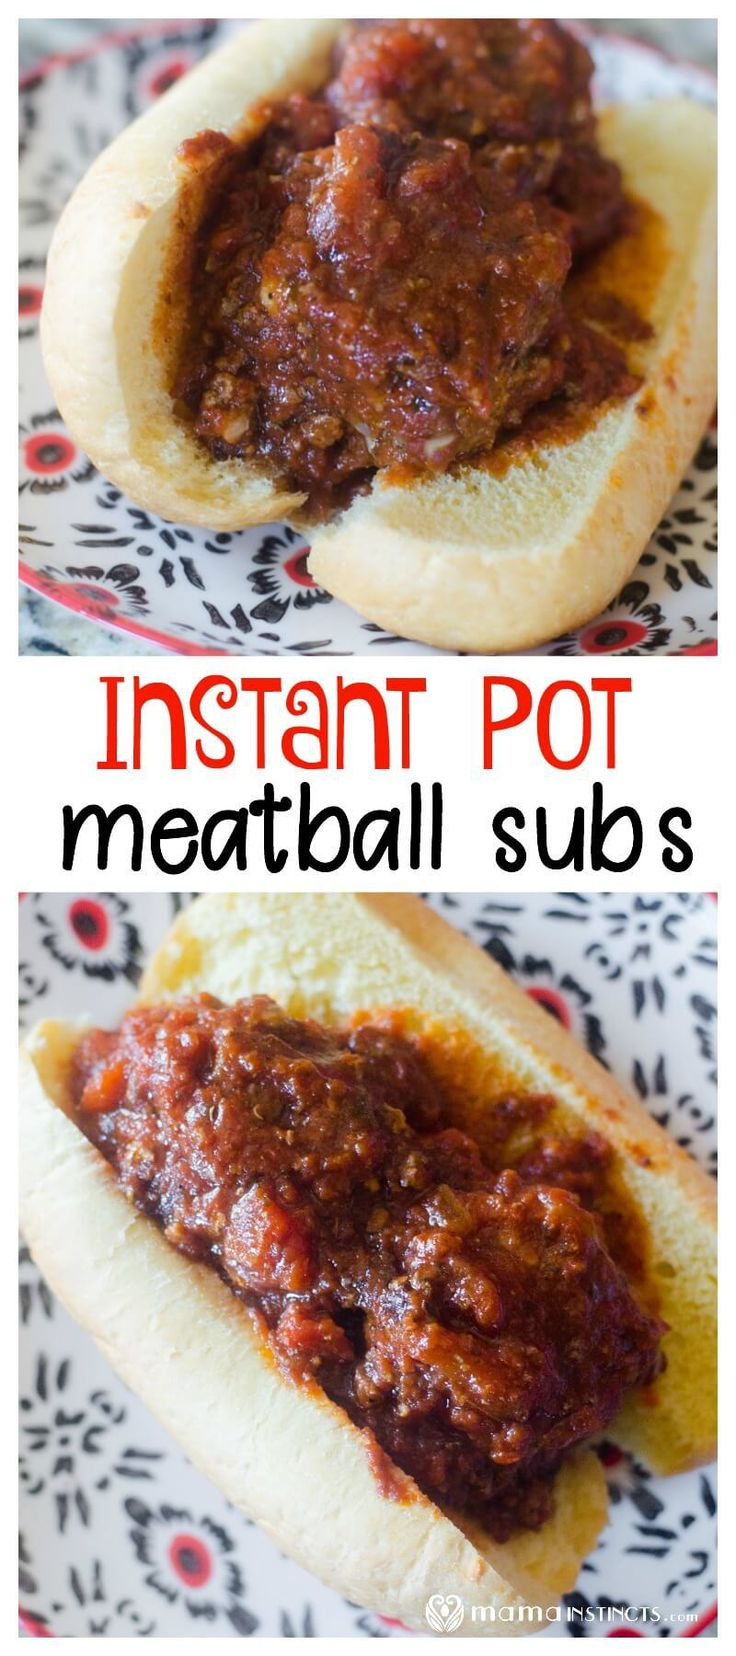 Make the tastiest and most perfect meatballs in your Instant Pot! This recipes is great for meatballs subs as well as spaghetti with meatballs. #mamaIP #instantpot #instantpotrecipes #easyrecipes #MamaInstinctsBlog